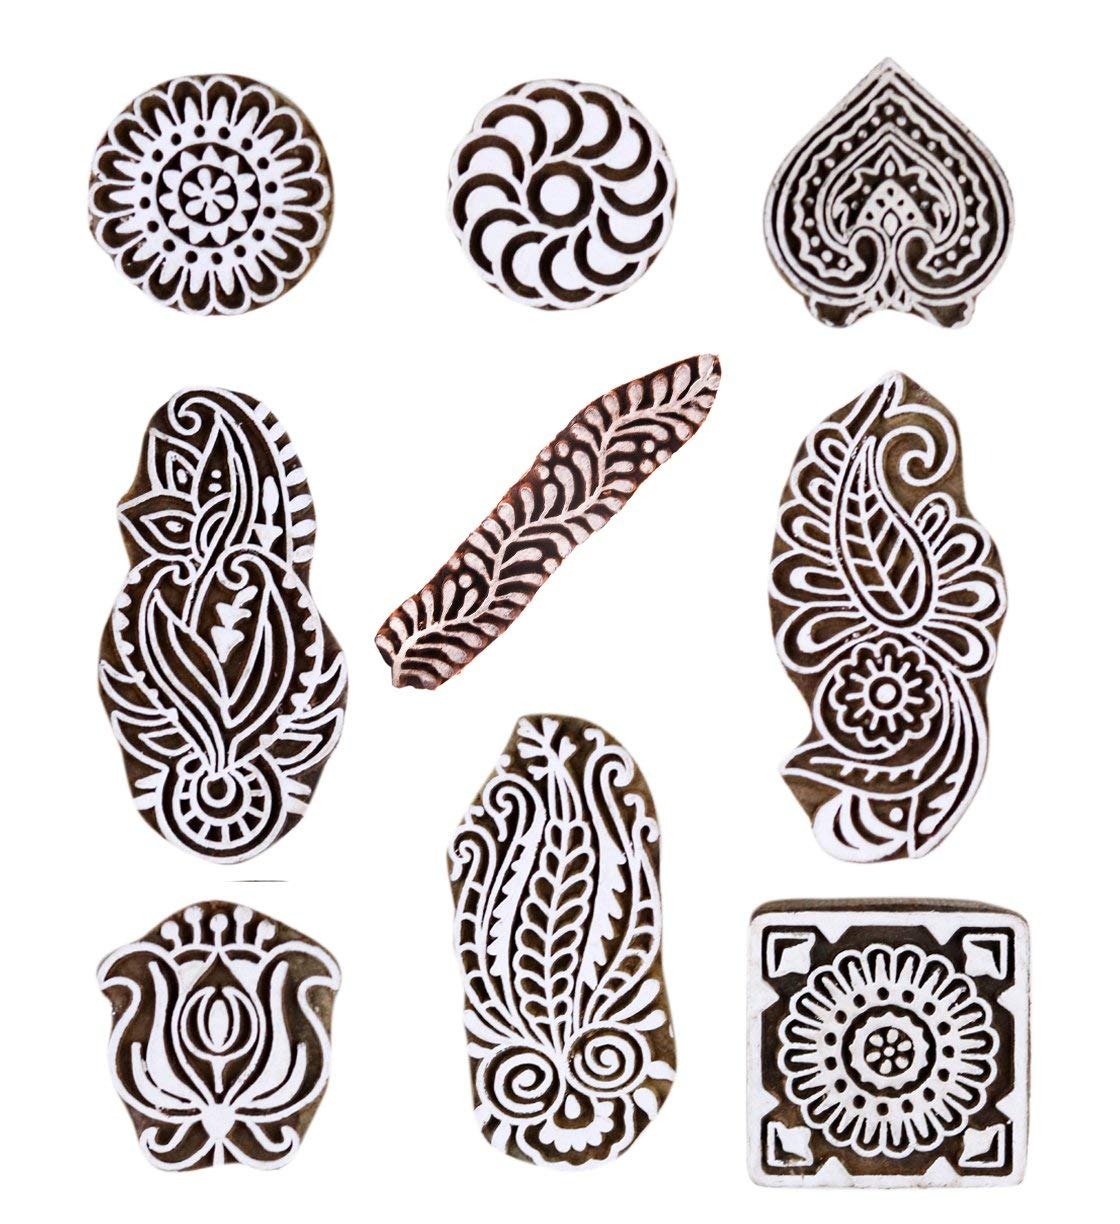 PARIJAT HANDICRAFT Printing Stamps Mughal Design Wooden Blocks (Set of 9) Hand-Carved for Saree Border Making Pottery Crafts Textile Printing